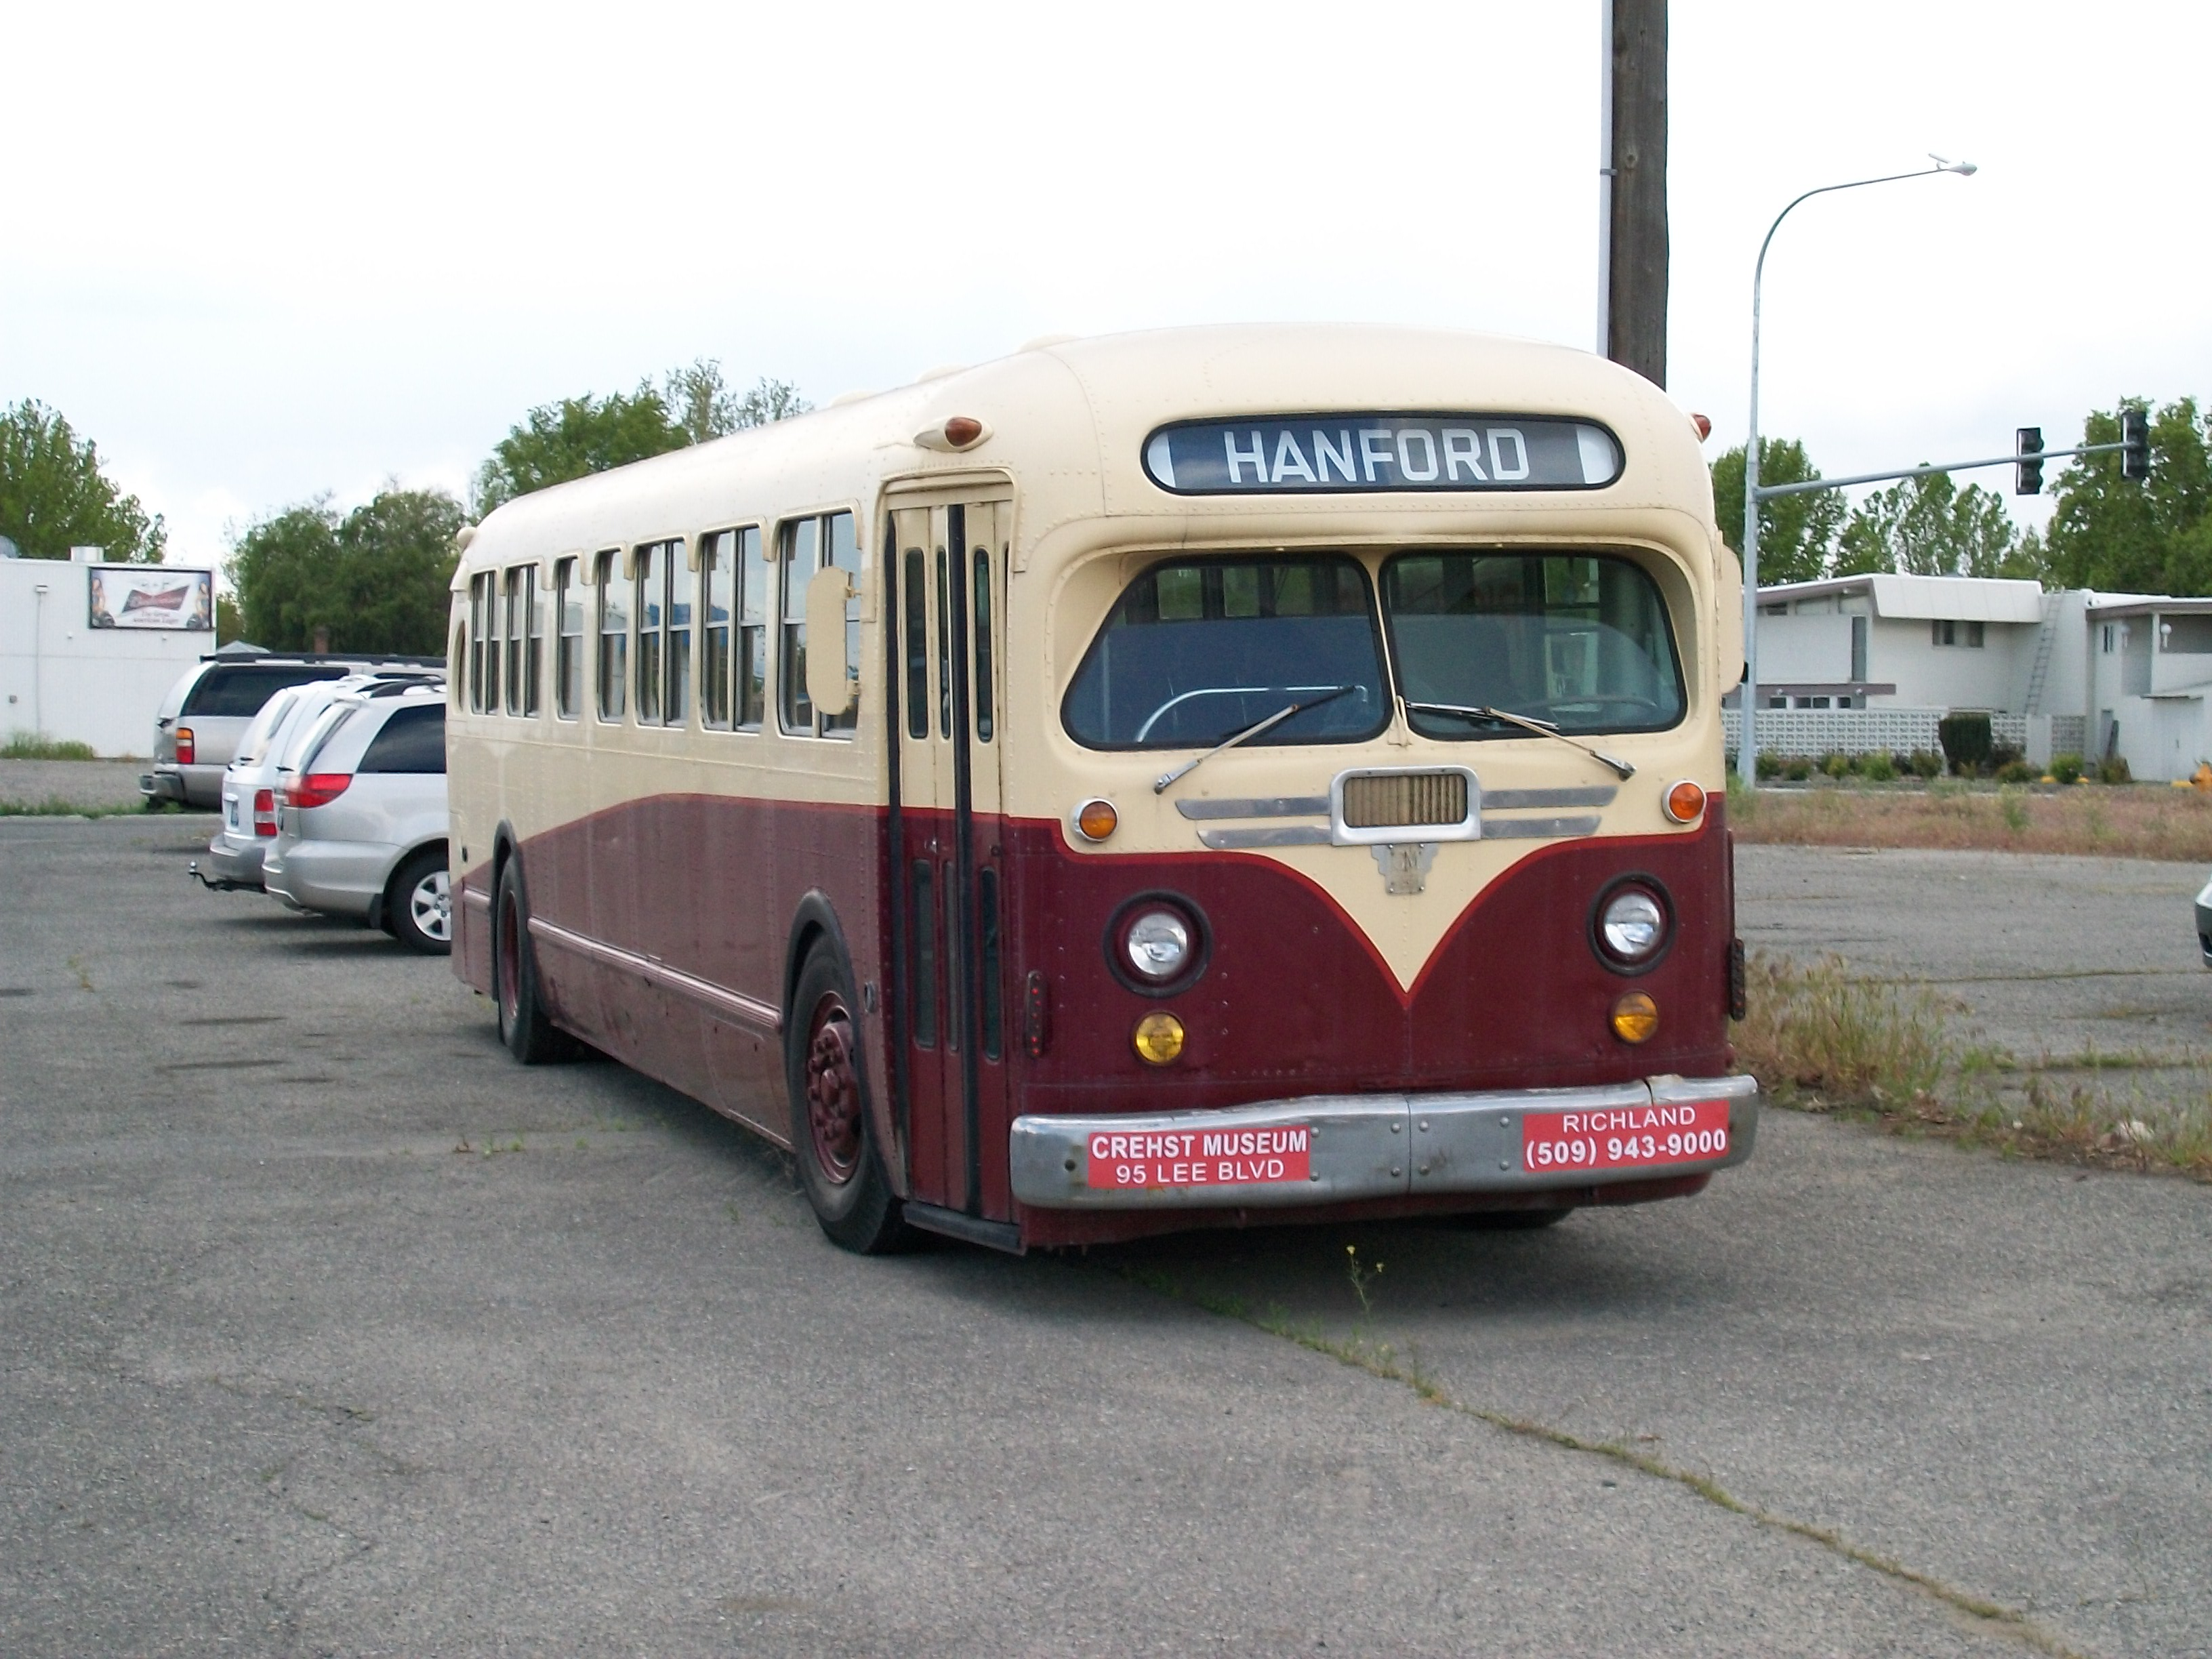 Gm bus photo - 1